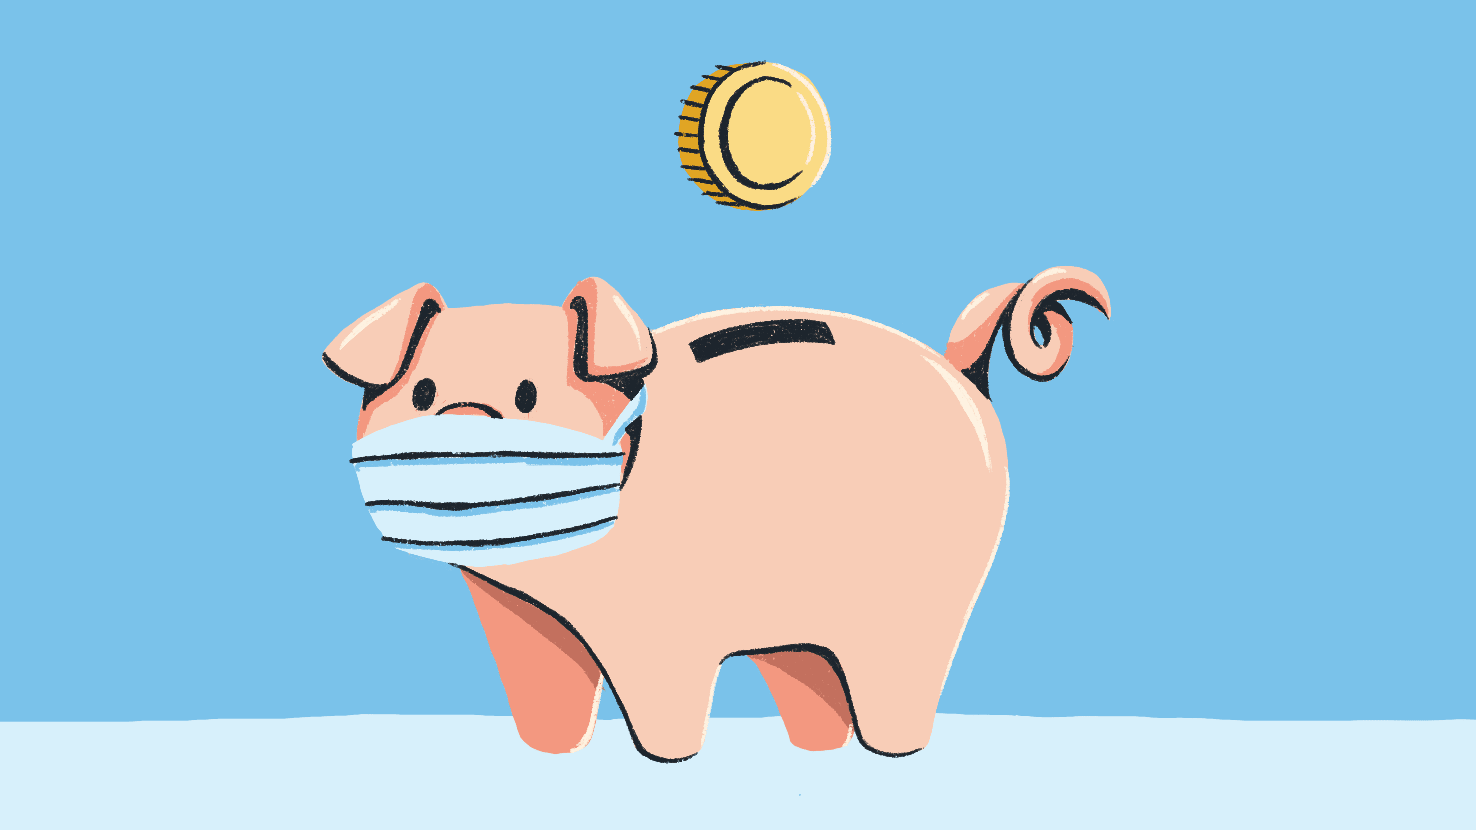 Illustration of a piggy bank wearing a medical mask and a coin dropping into the slot.